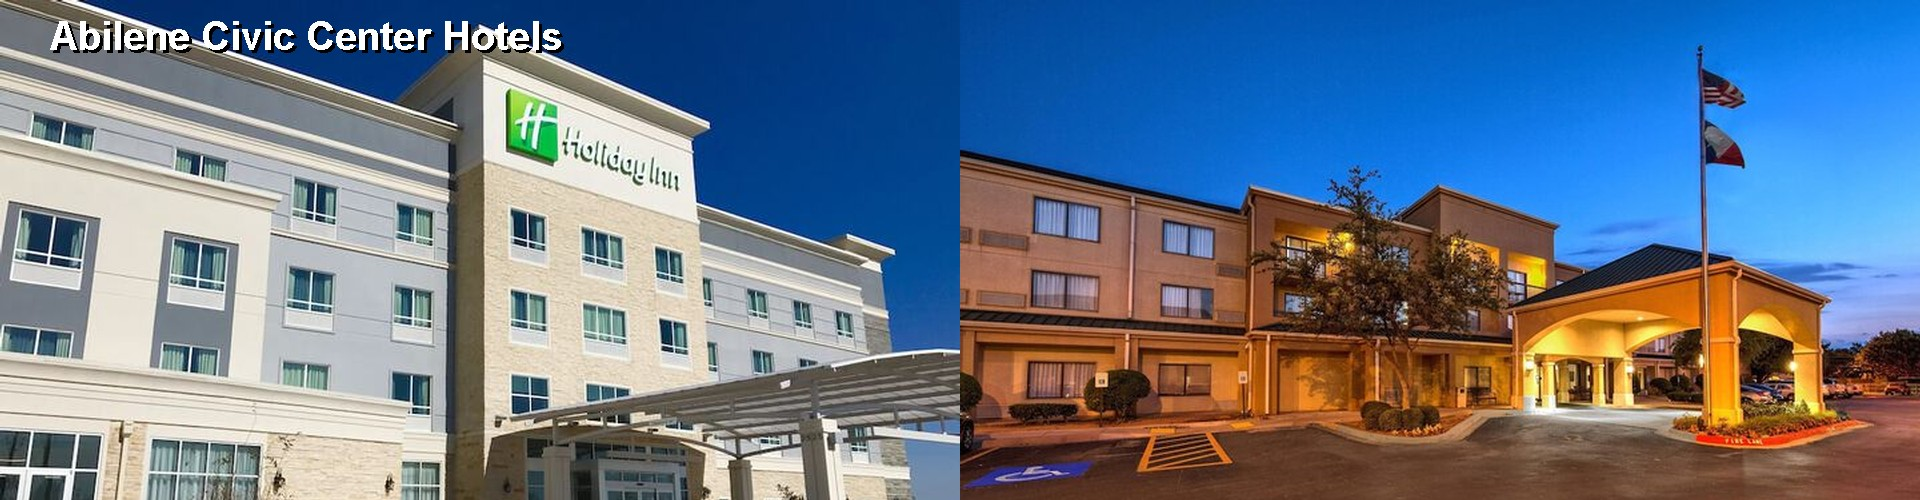 4 Best Hotels near Abilene Civic Center